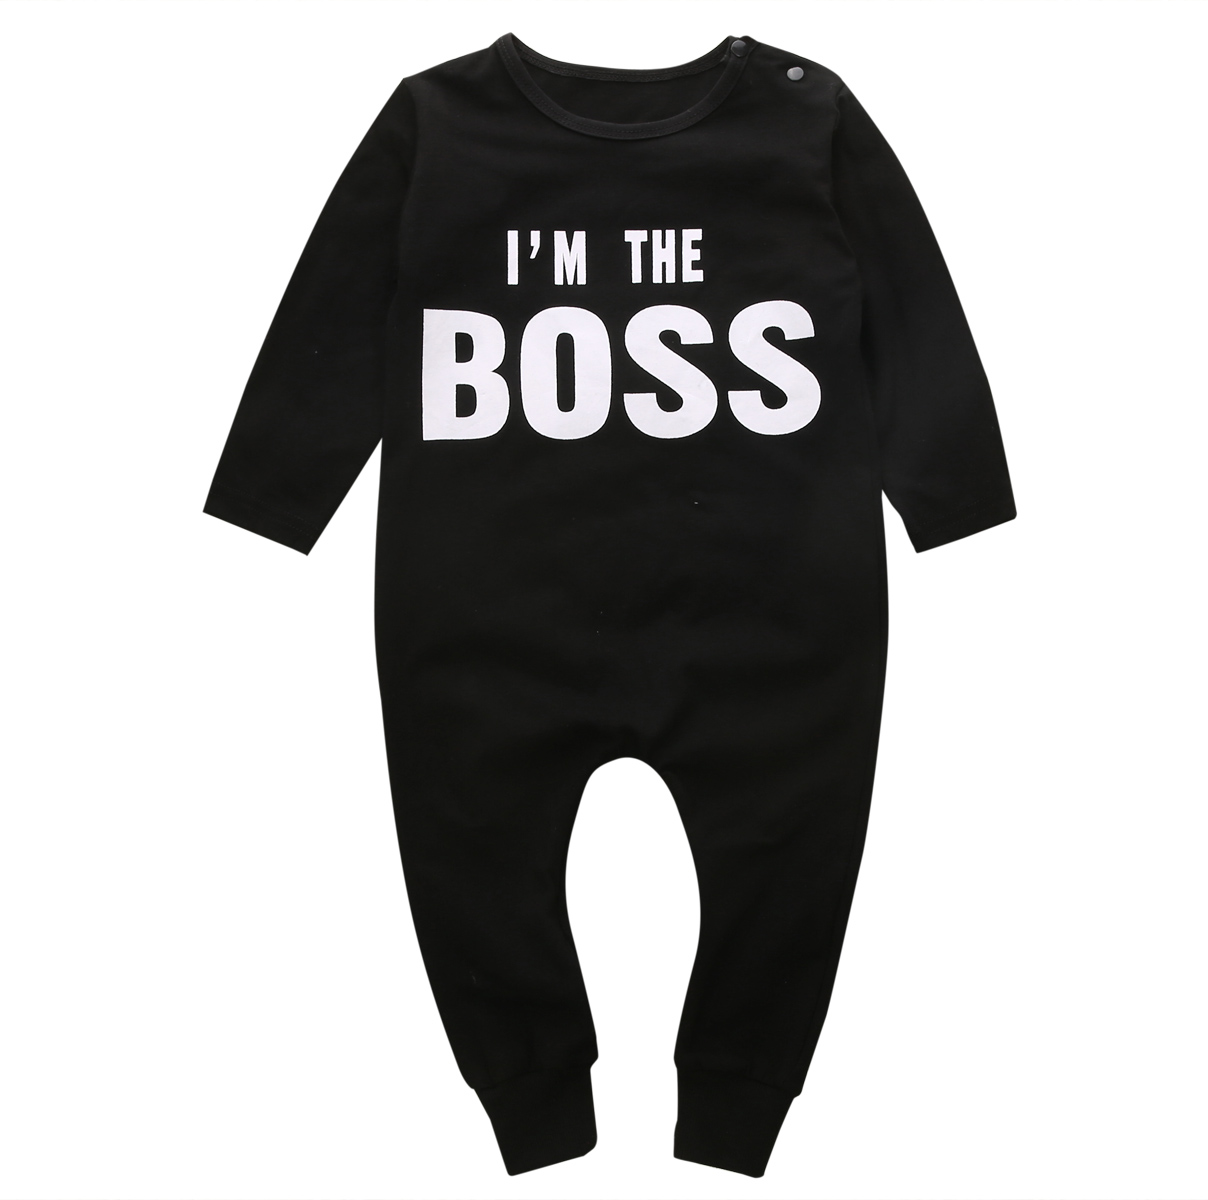 a2a0f19b9e05 I M The Boss Newborn Infant Baby Boys Girl Rompers Tollder Baby Long Sleeve  Black